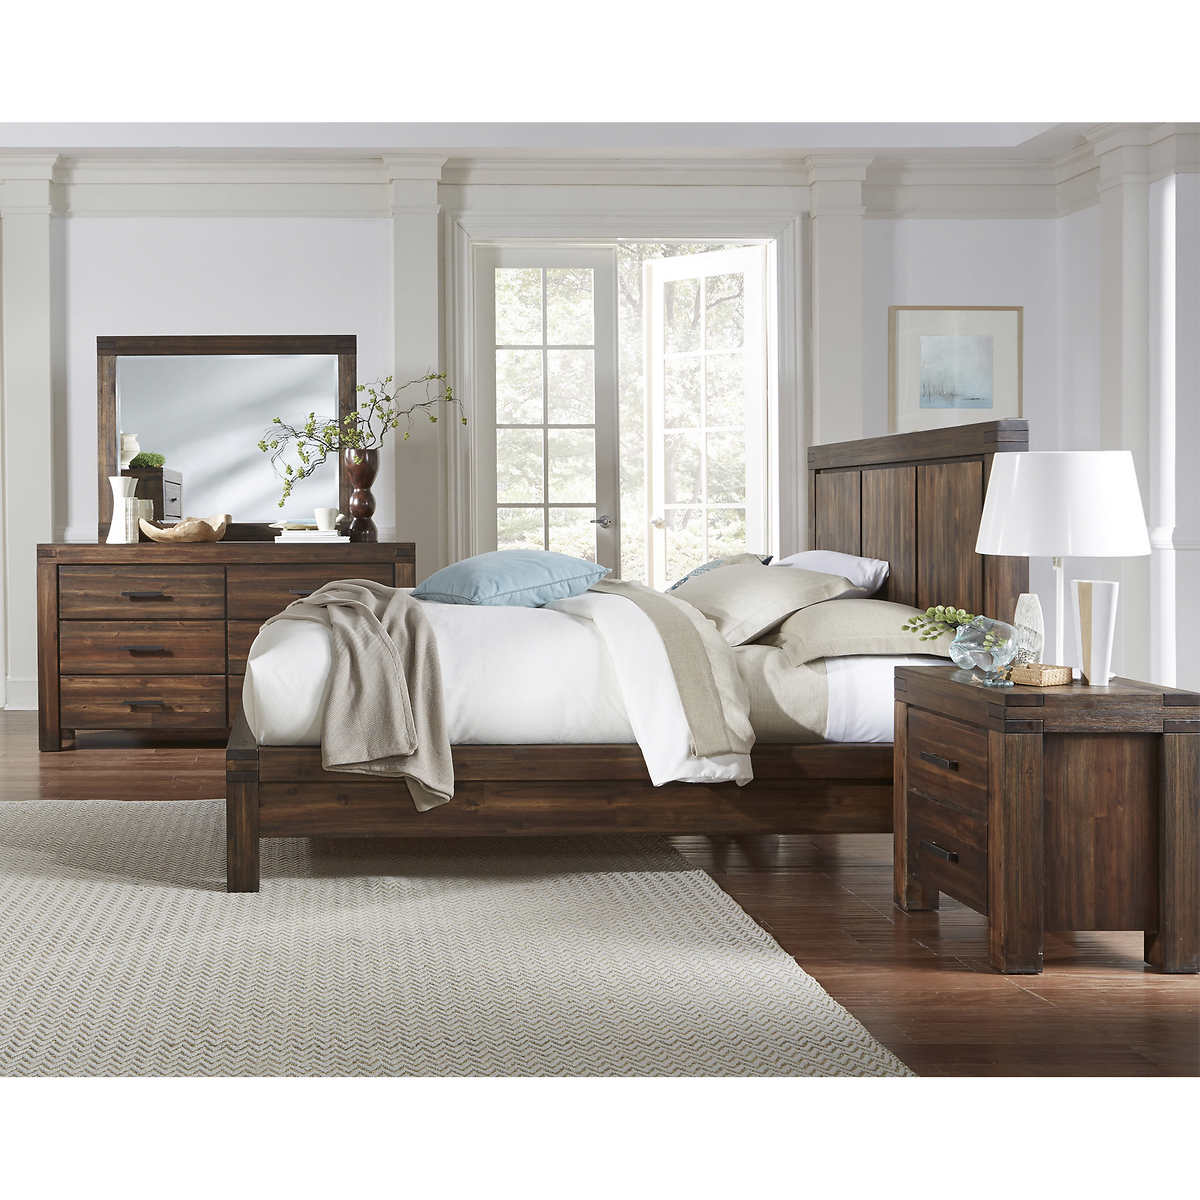 Queen Furniture Bedroom Set Queen Bedroom Sets